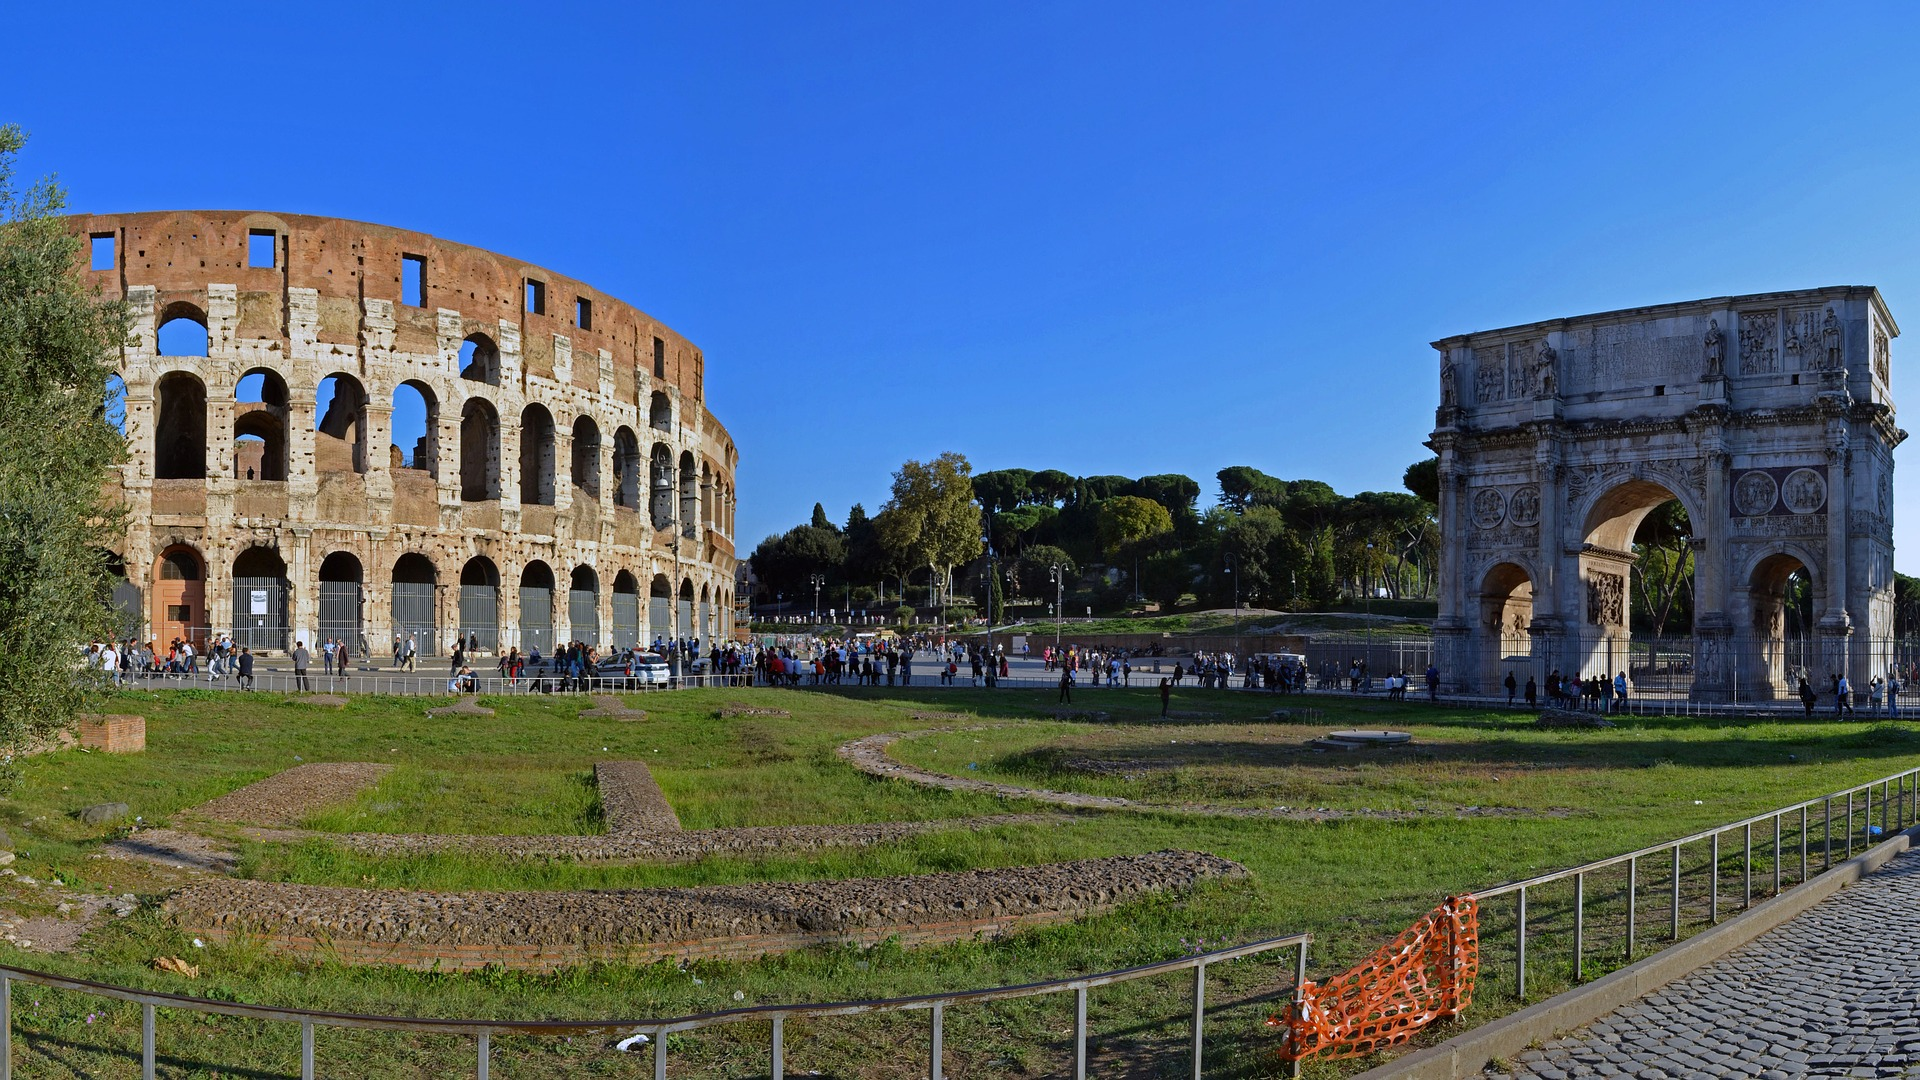 The Colosseum and Arch of Constantine